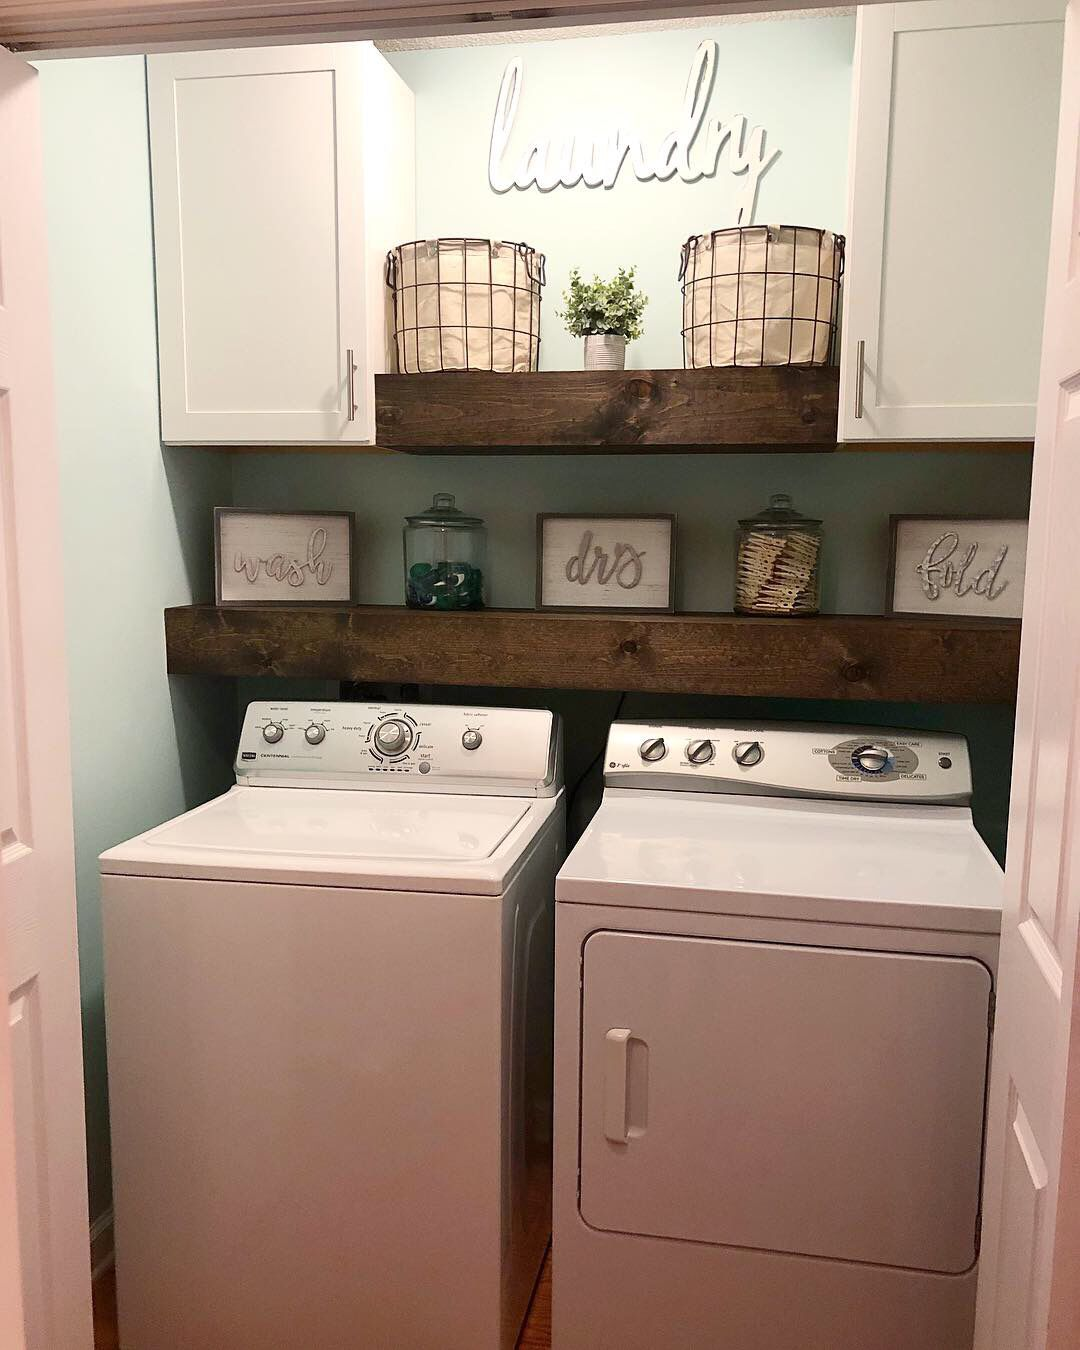 With curtain rod for hanging shirts  Laundry room diy, Laundy